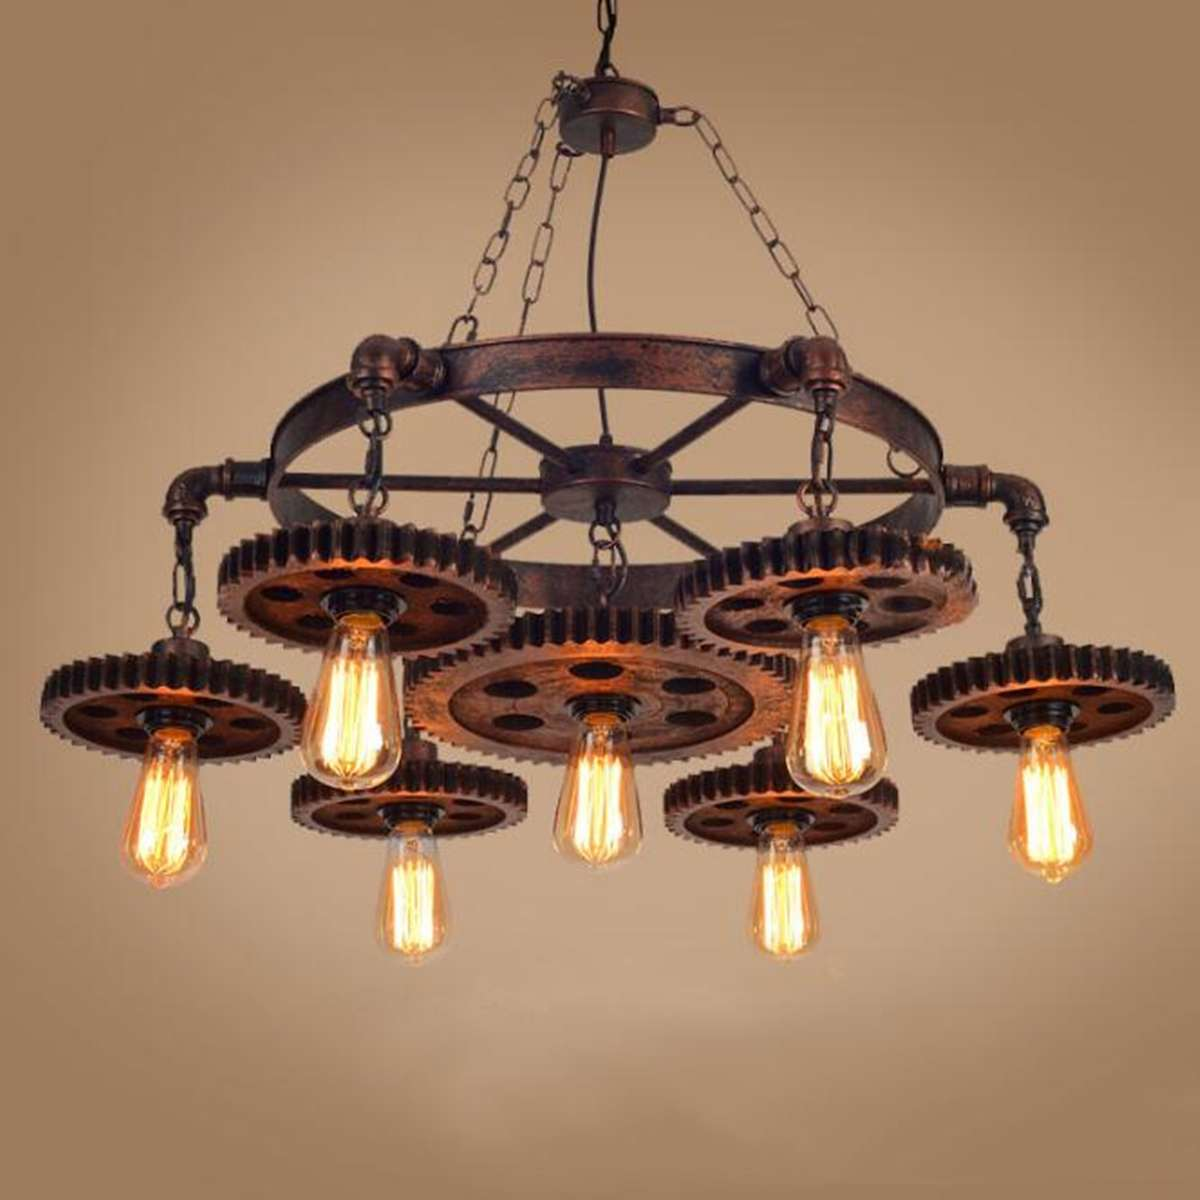 Retro Pendant Lamp Iron LED Ceiling Lamp Industrial Chandelier E27 Indoor Lighting Loft Restaurant Bar Steampunk Light Fixture